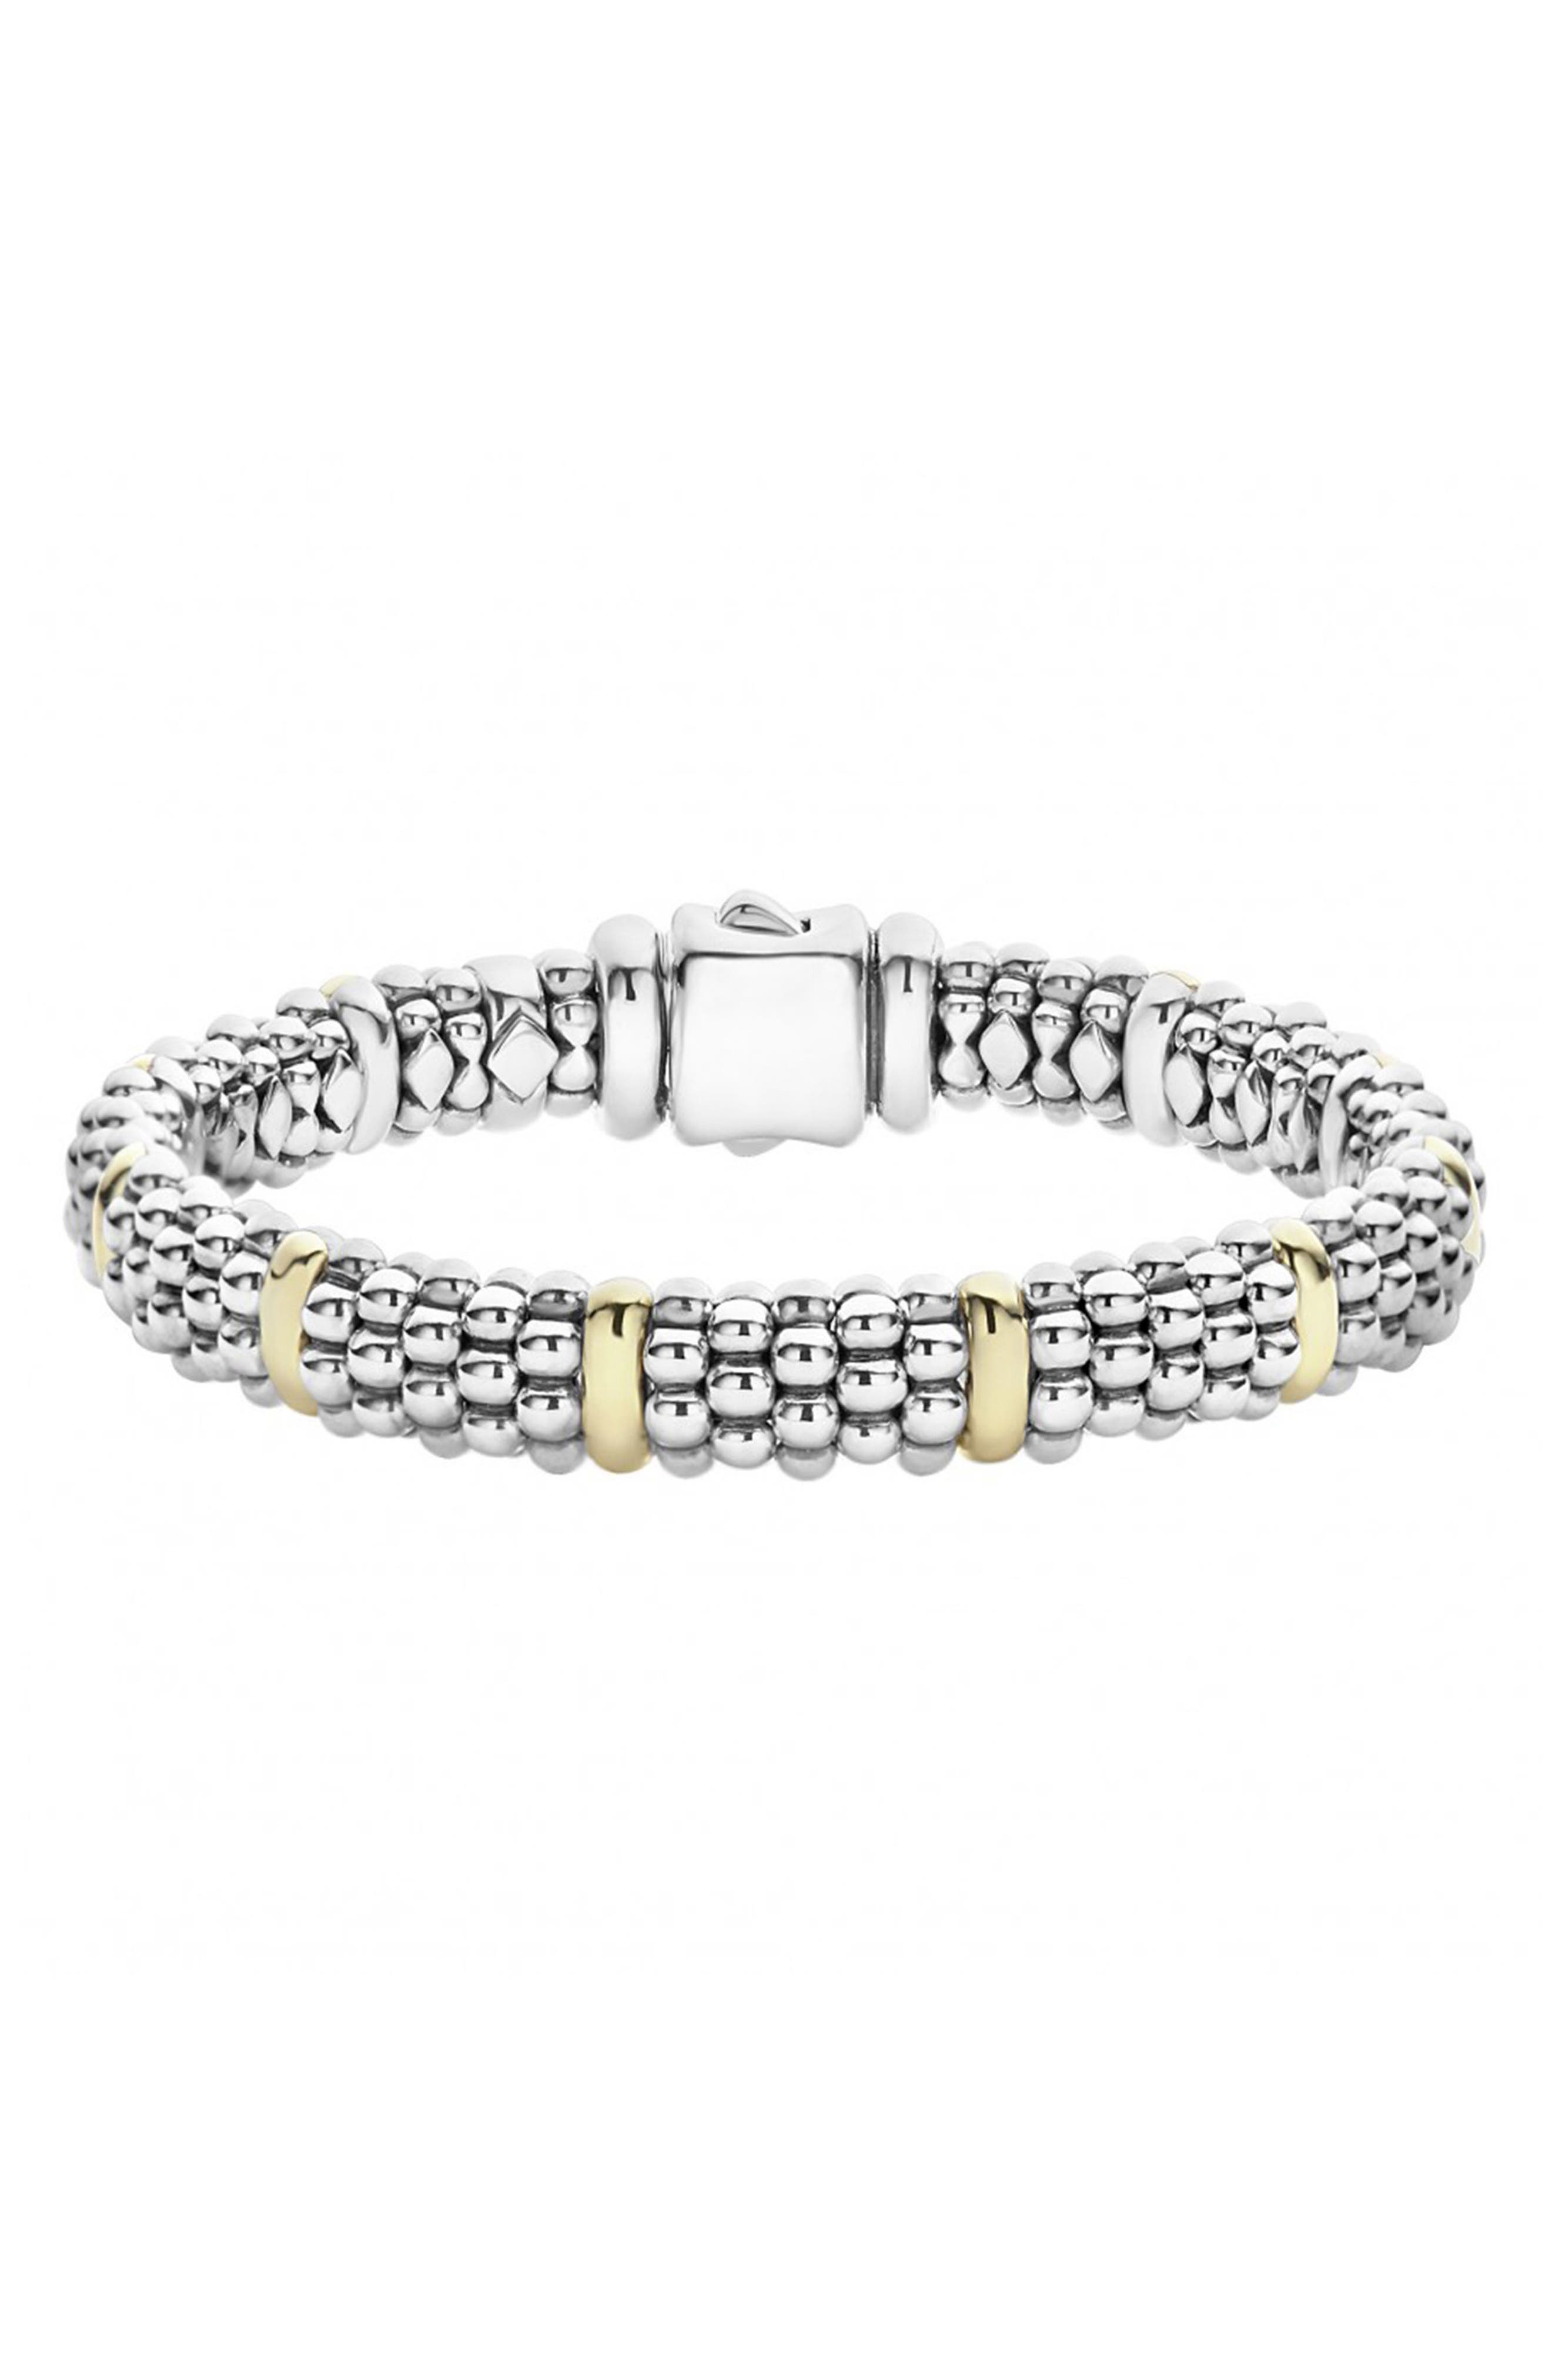 Oval Rope Caviar Bracelet,                         Main,                         color, SILVER/ GOLD